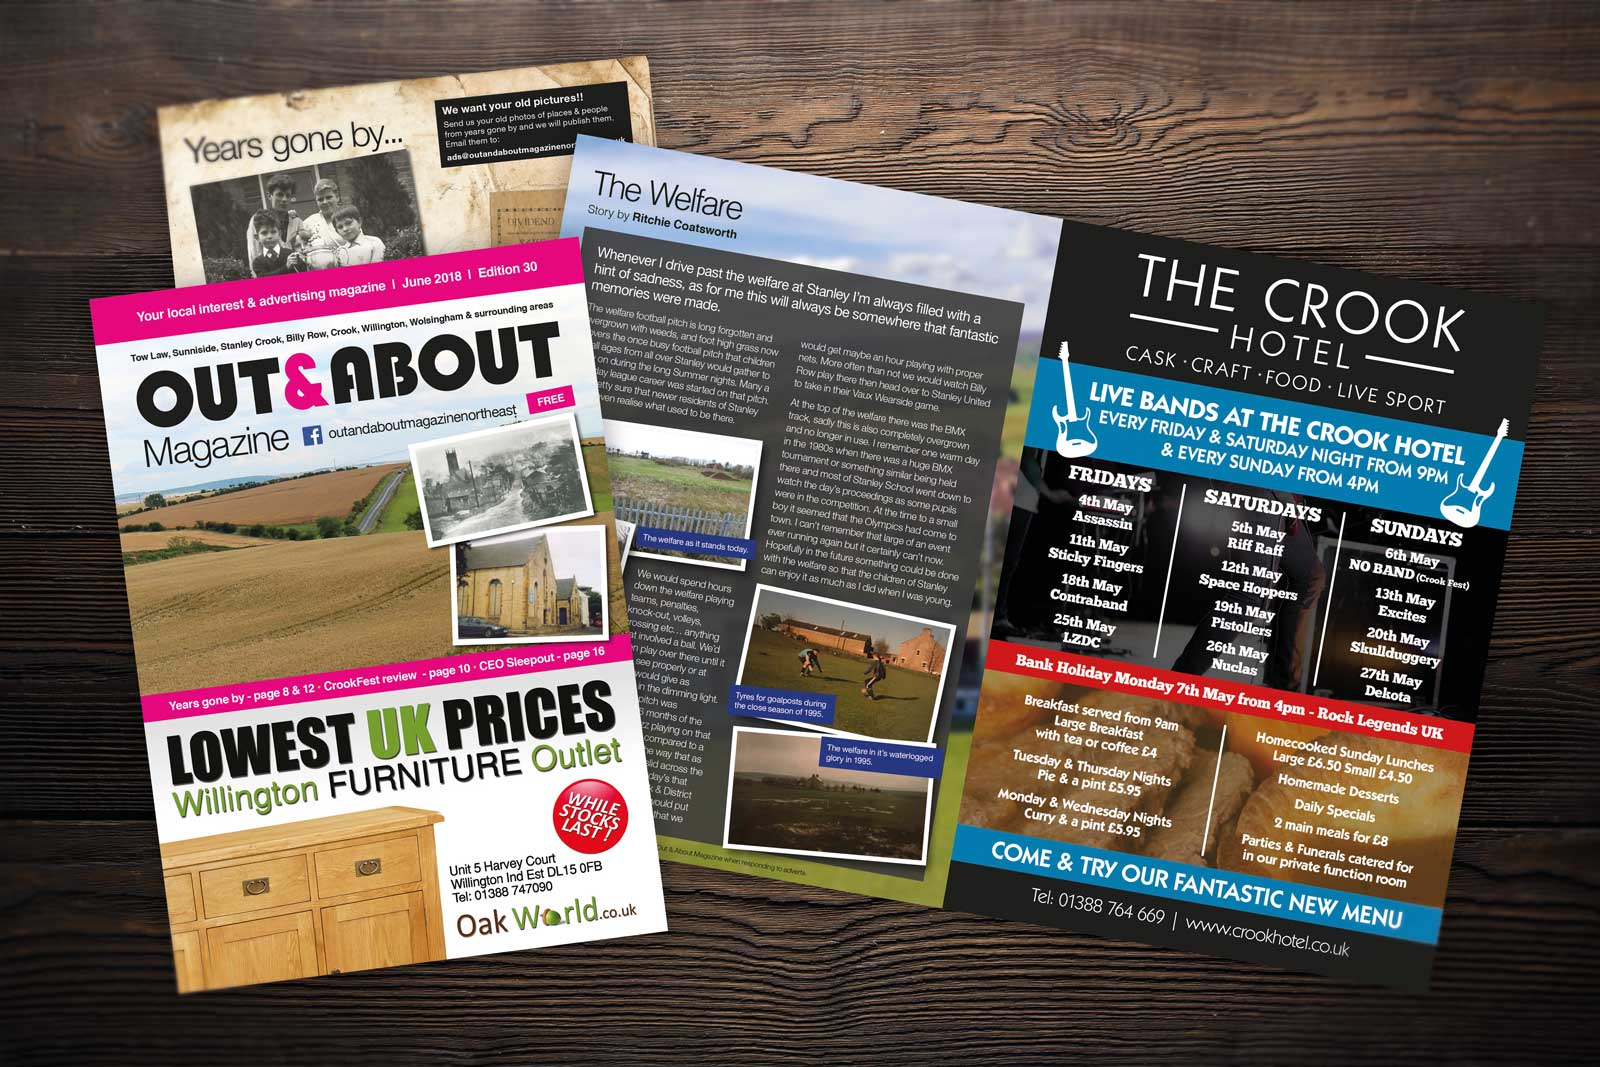 Out & About Magazine Adverts